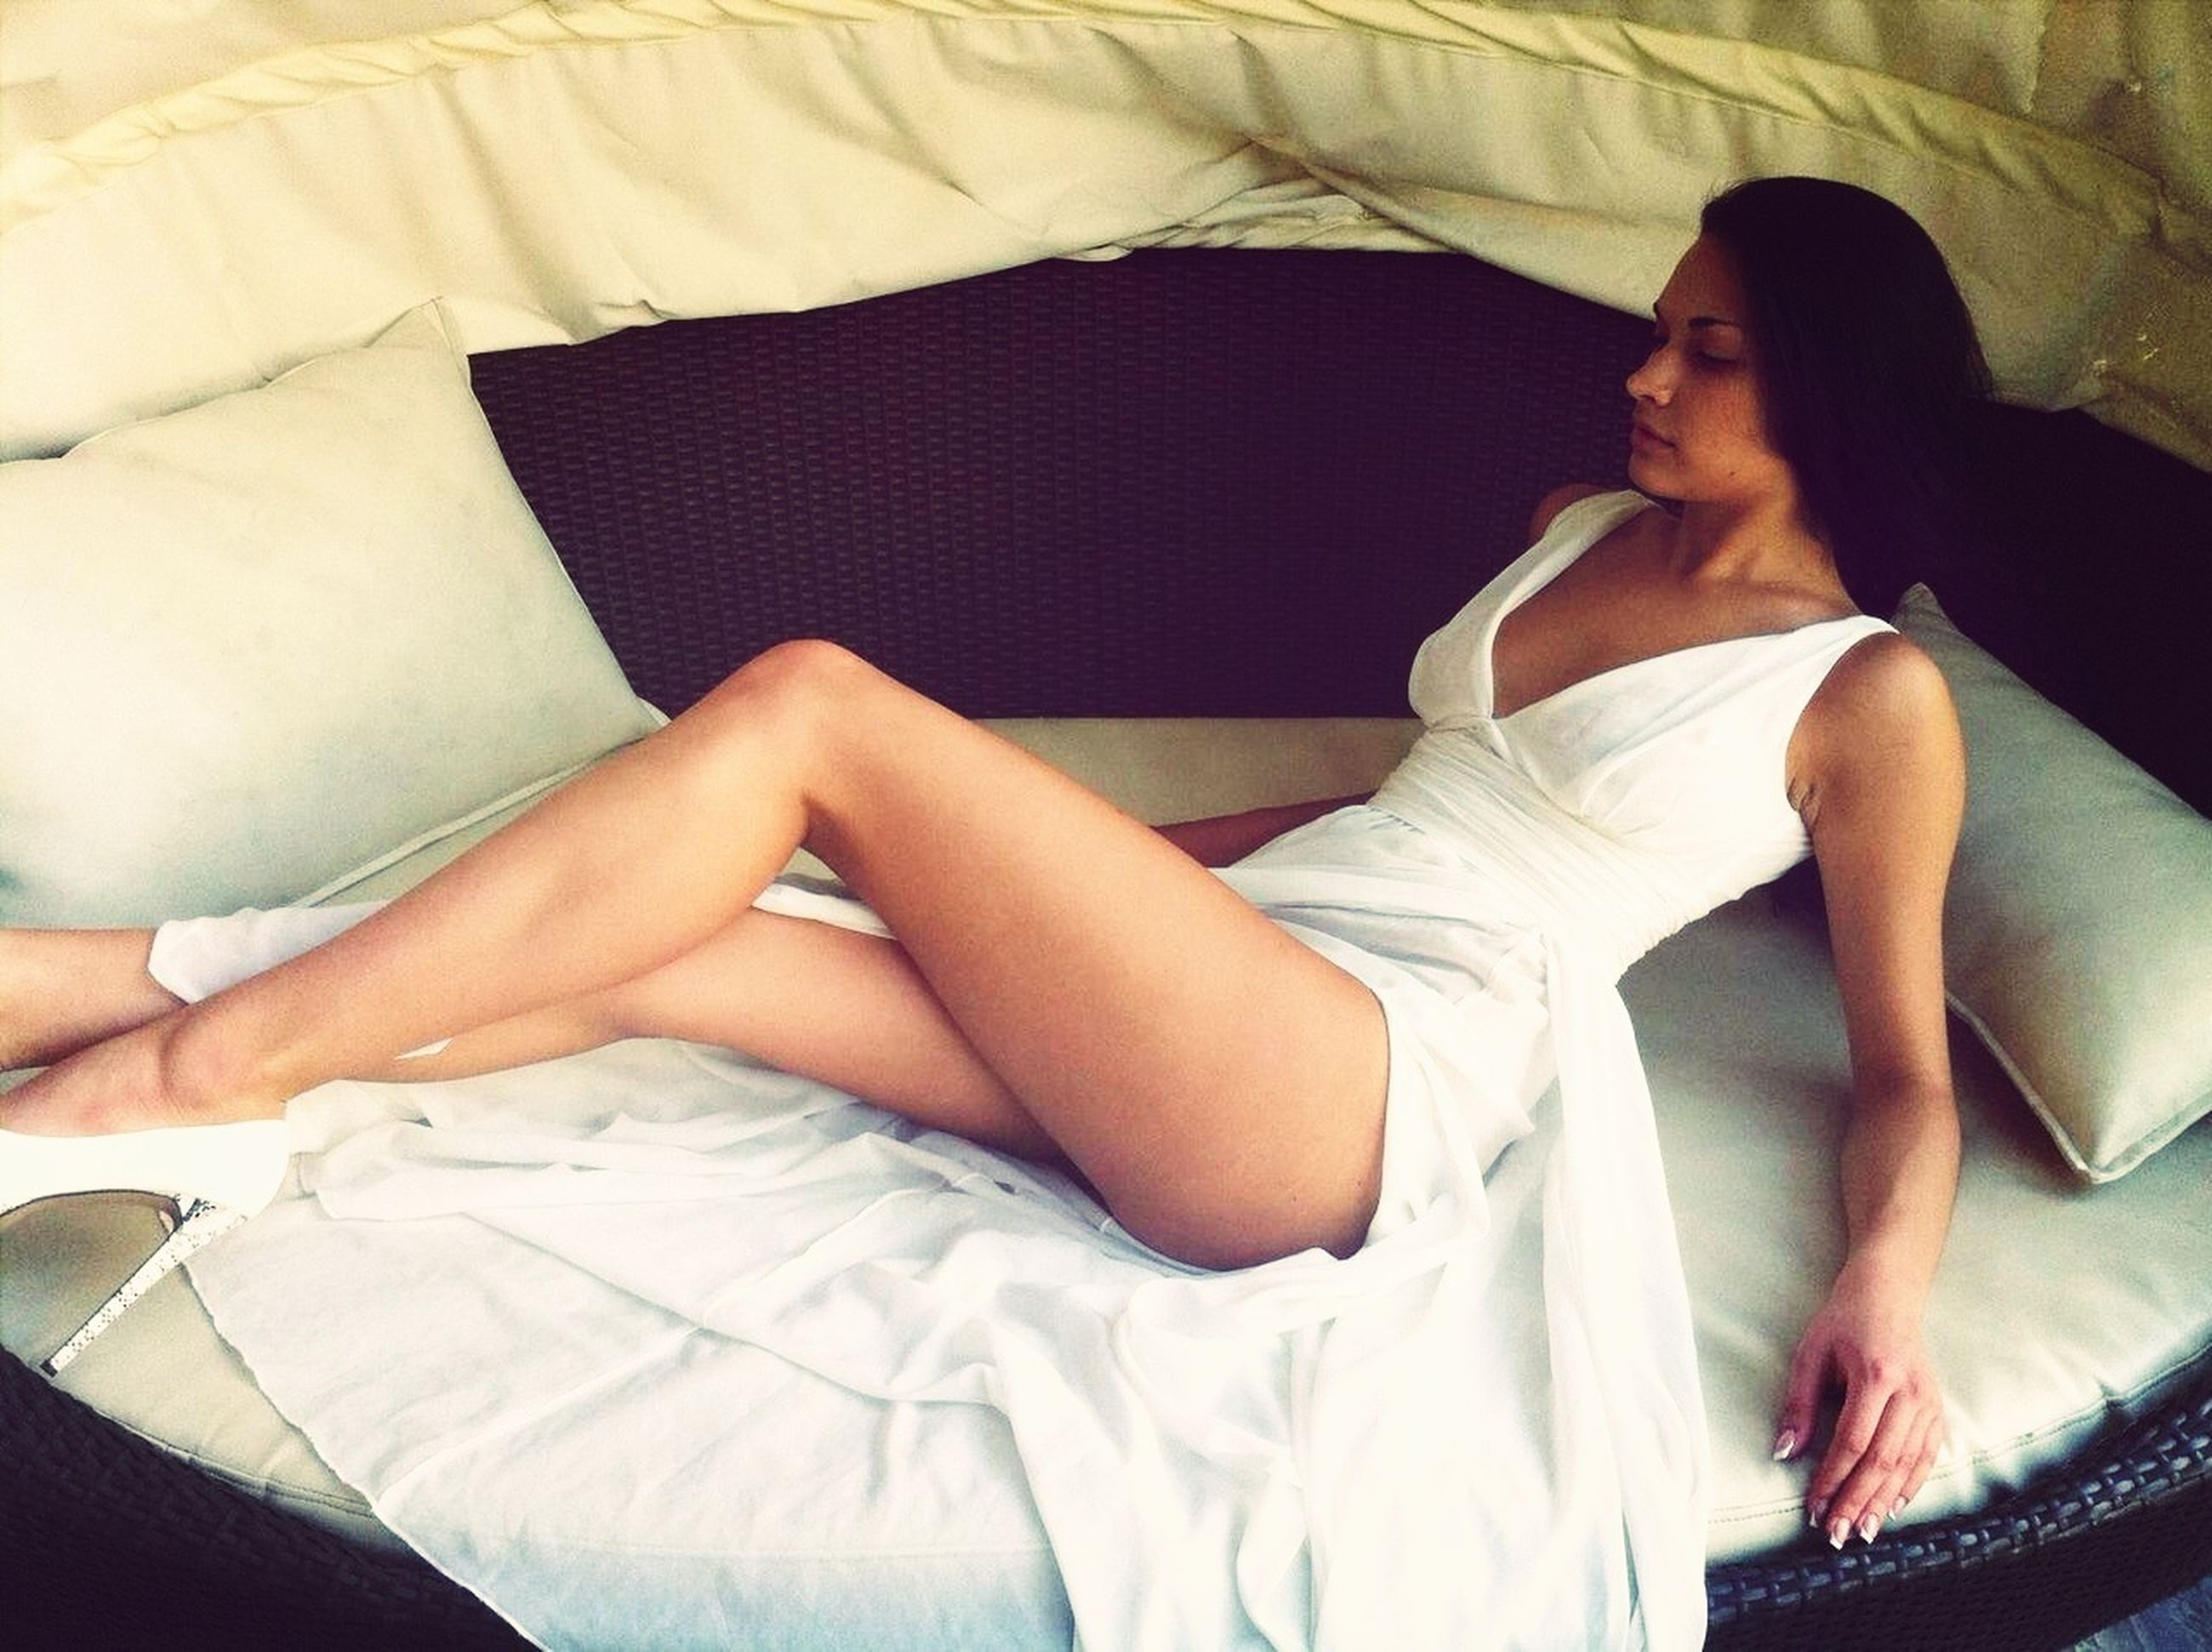 indoors, bed, young adult, relaxation, lifestyles, young women, sitting, bedroom, sofa, person, resting, lying down, home interior, casual clothing, leisure activity, sleeping, comfortable, togetherness